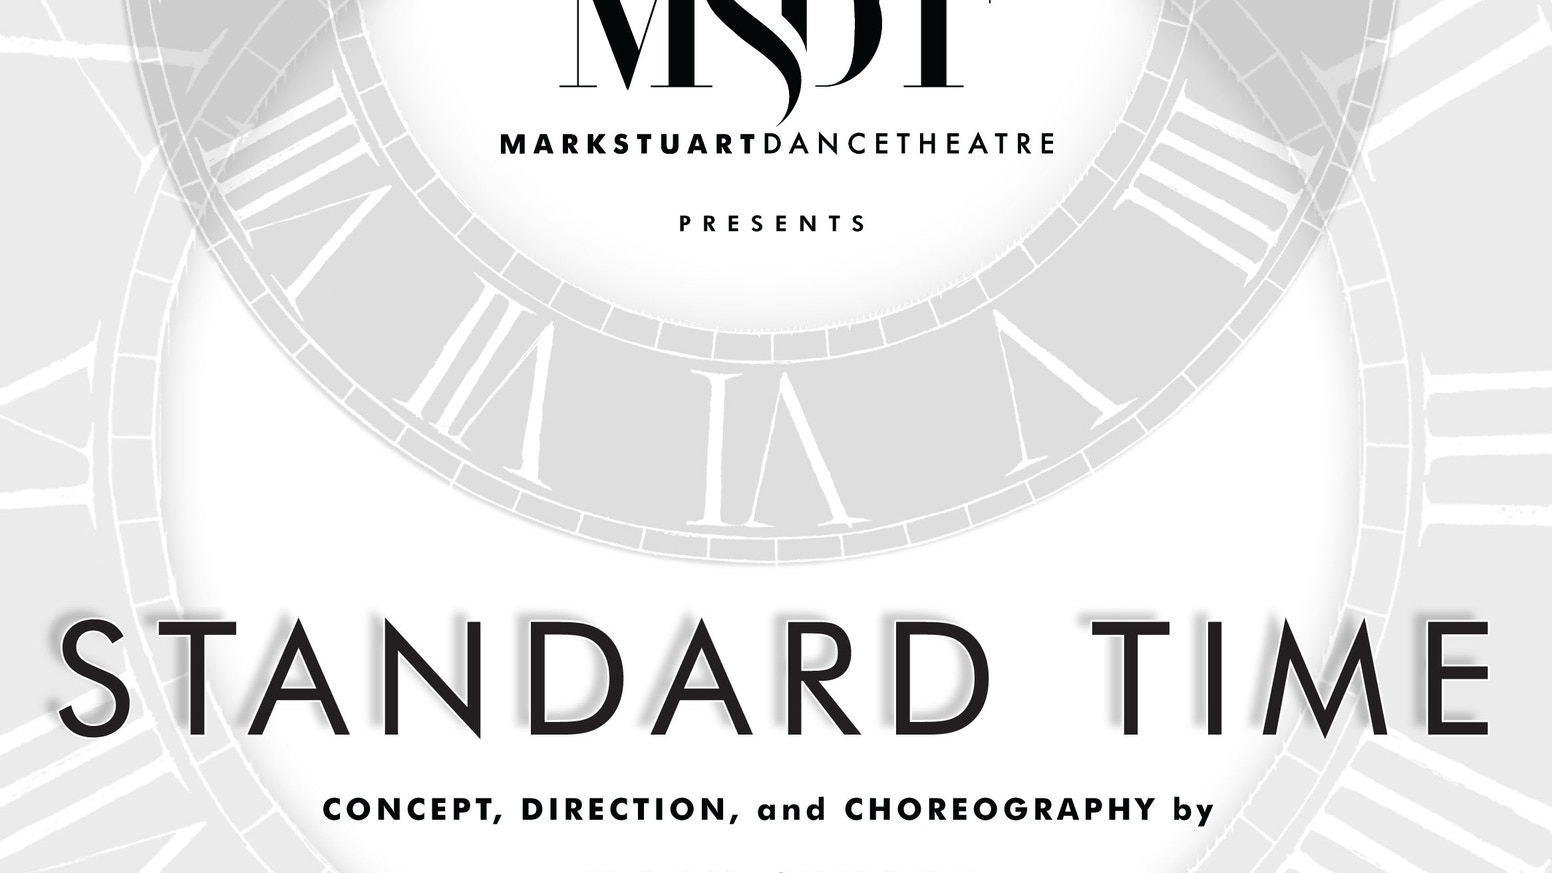 STANDARD TIME is a 90-minute action-packed and gravity-defying dance-theatre piece exploring social conflict and moral evolution.